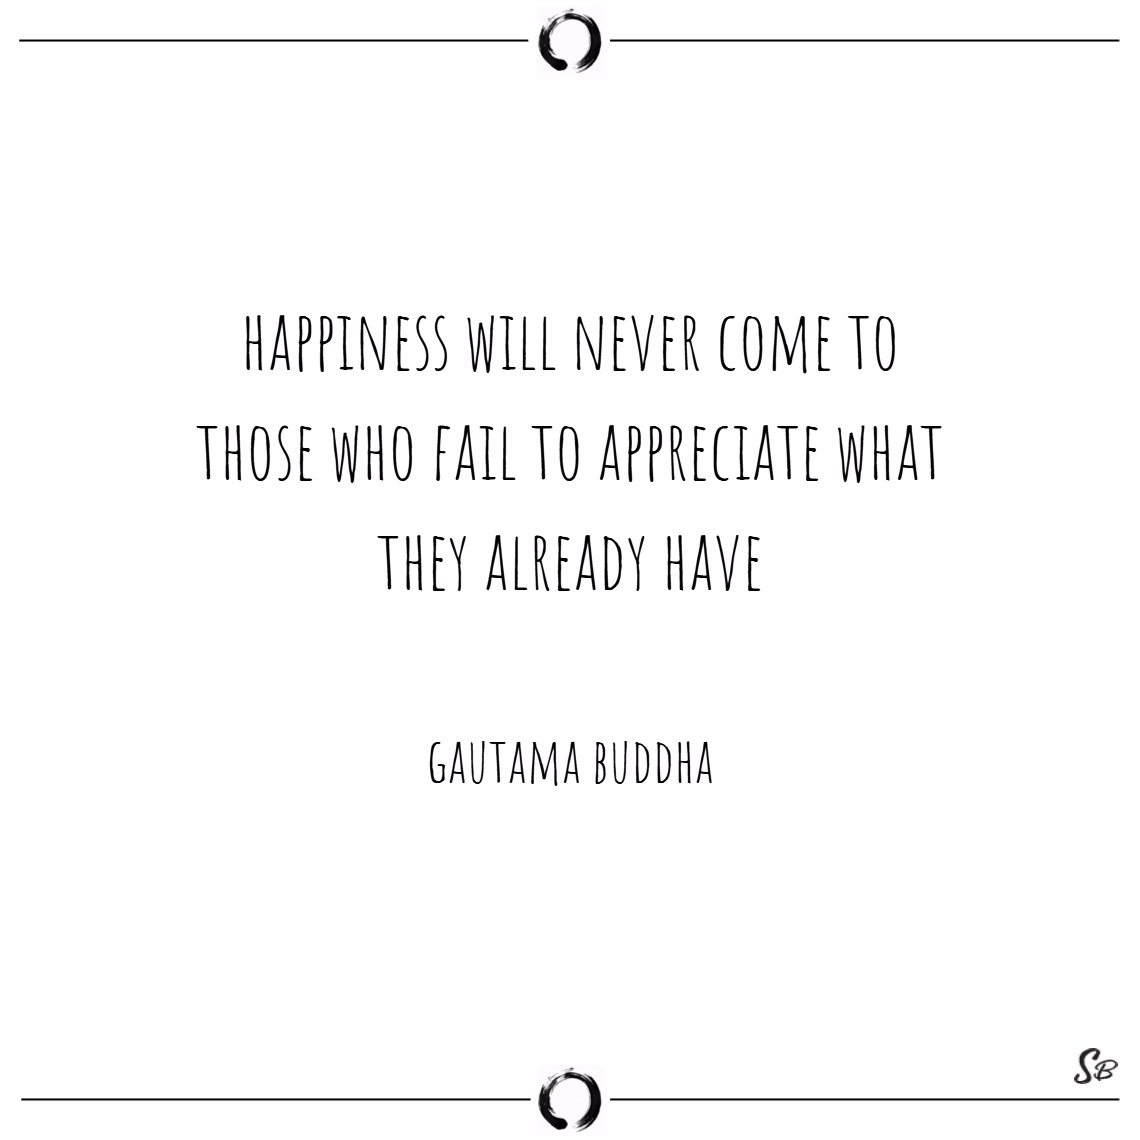 Happiness will never come to those who fail to appreciate what they already have. – gautama buddha